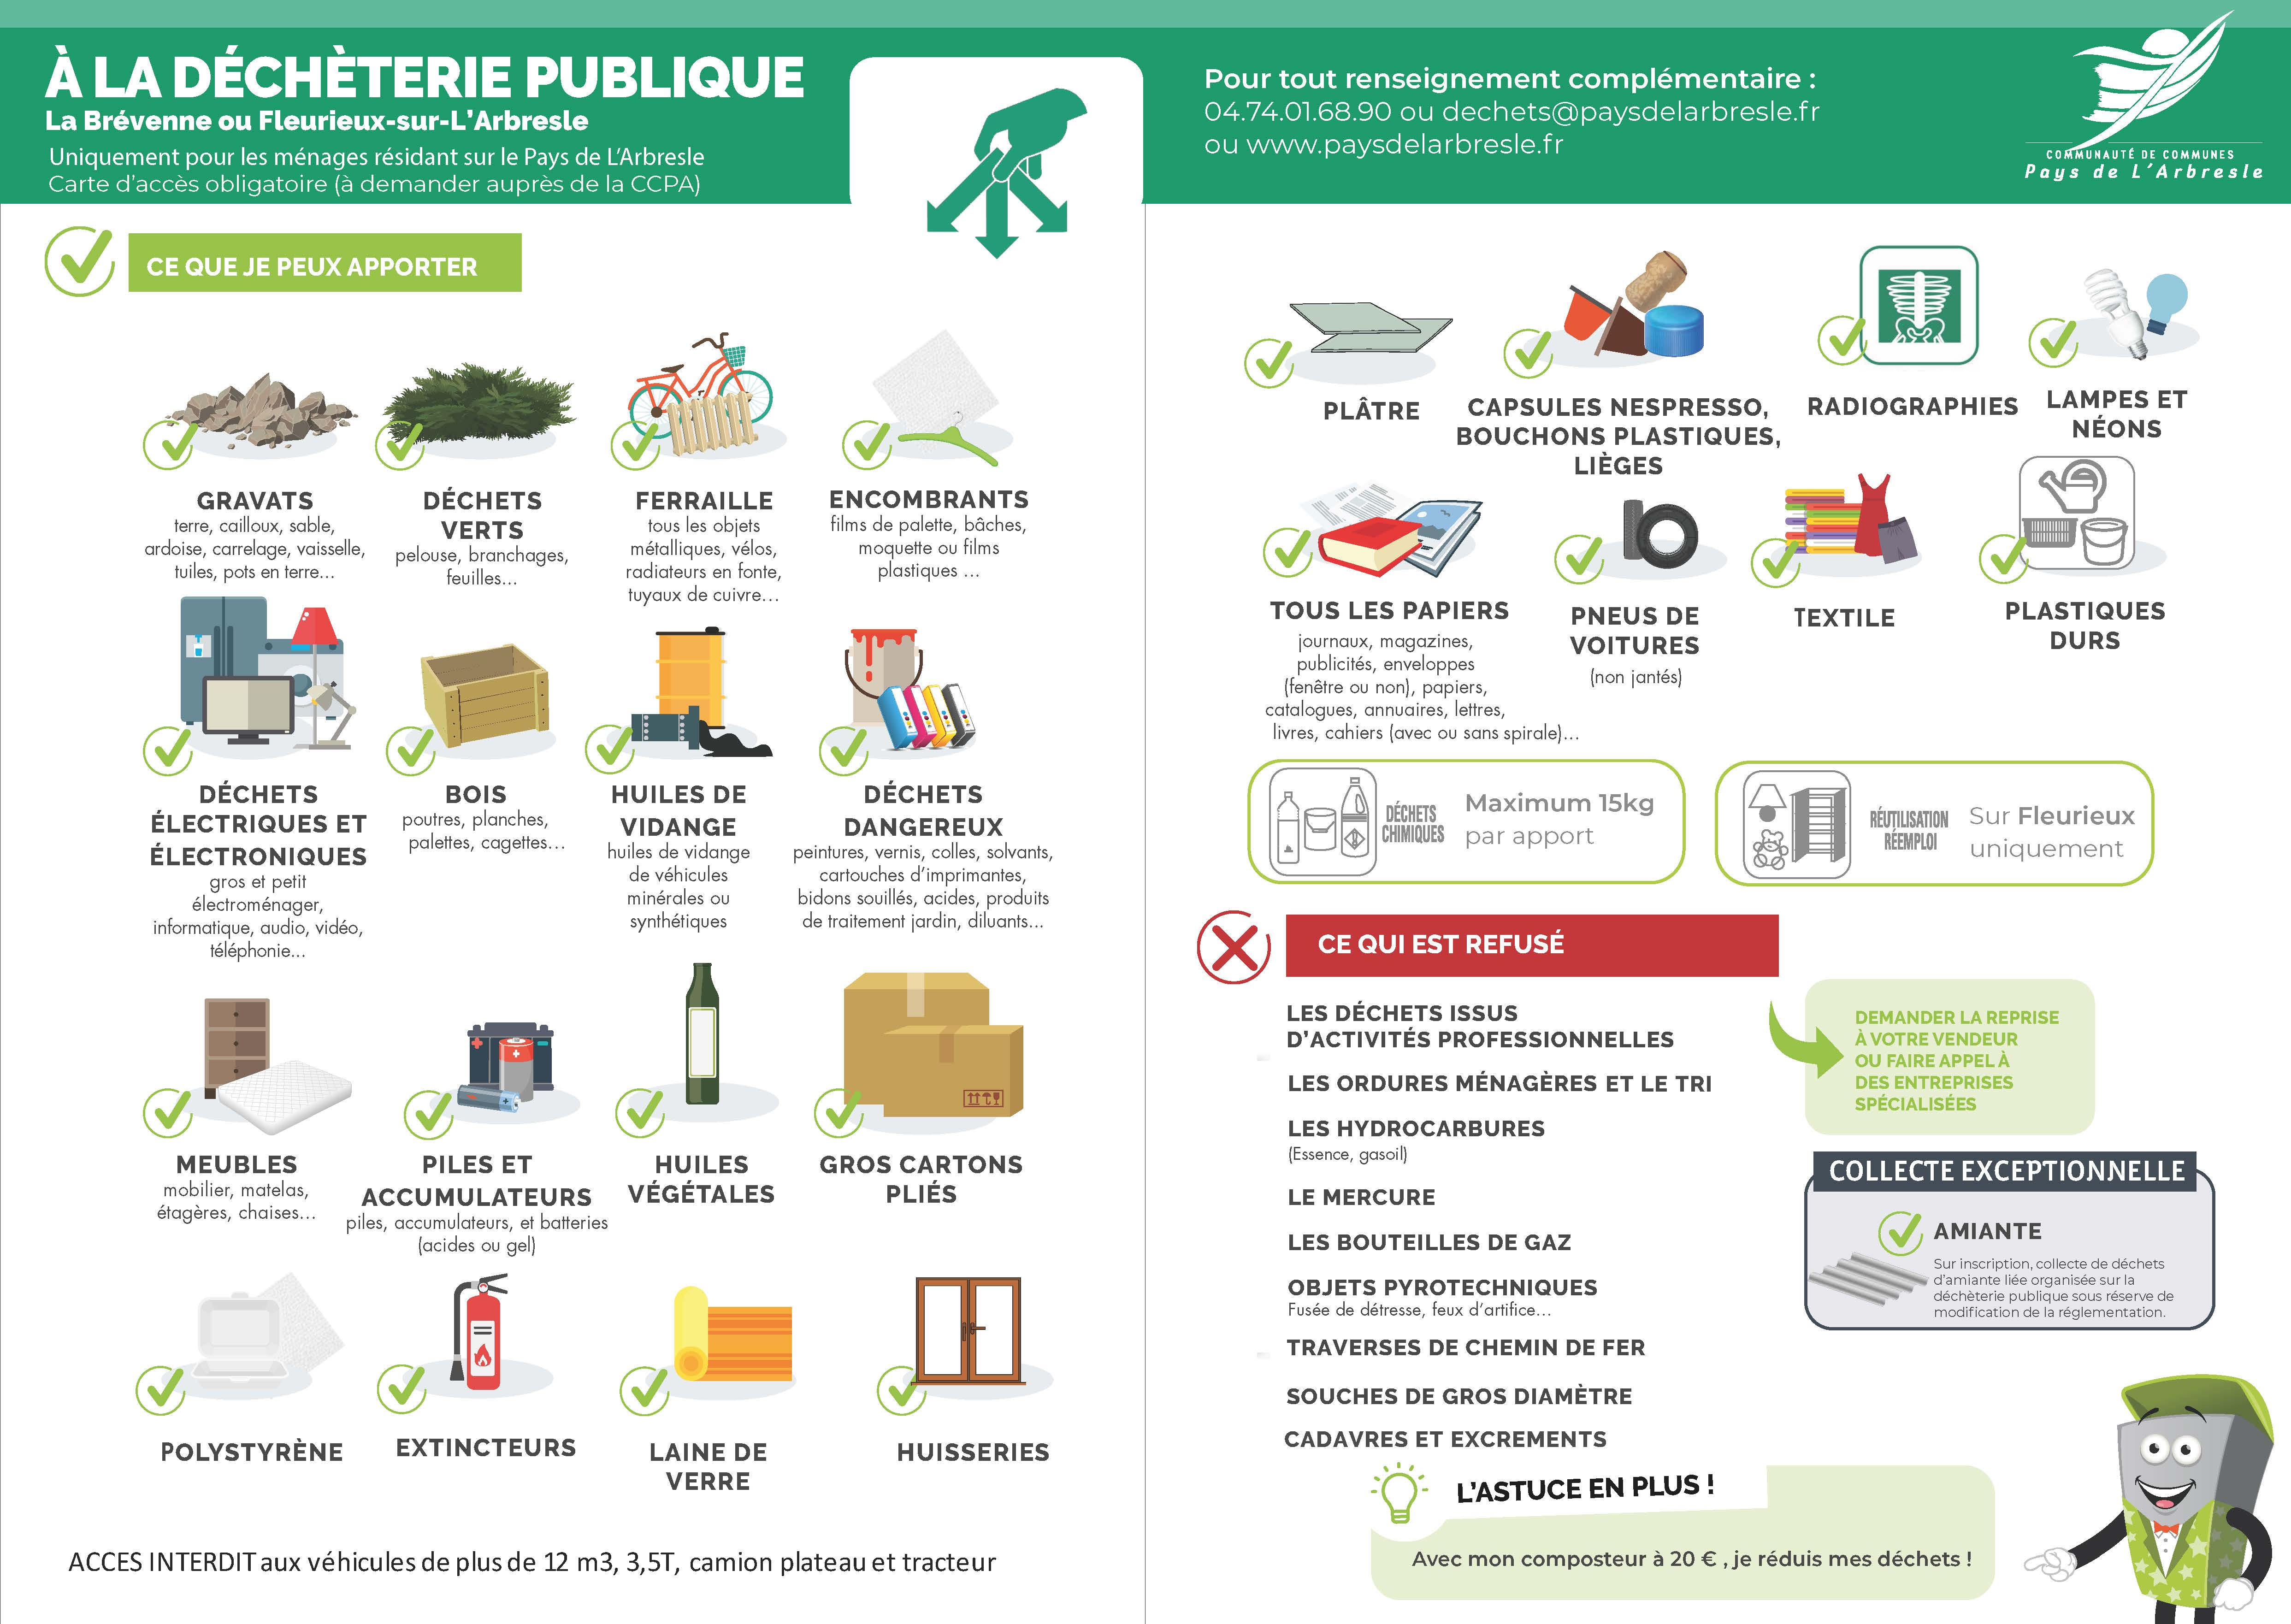 Extrait guide du tri VDEF_Page_2.jpg